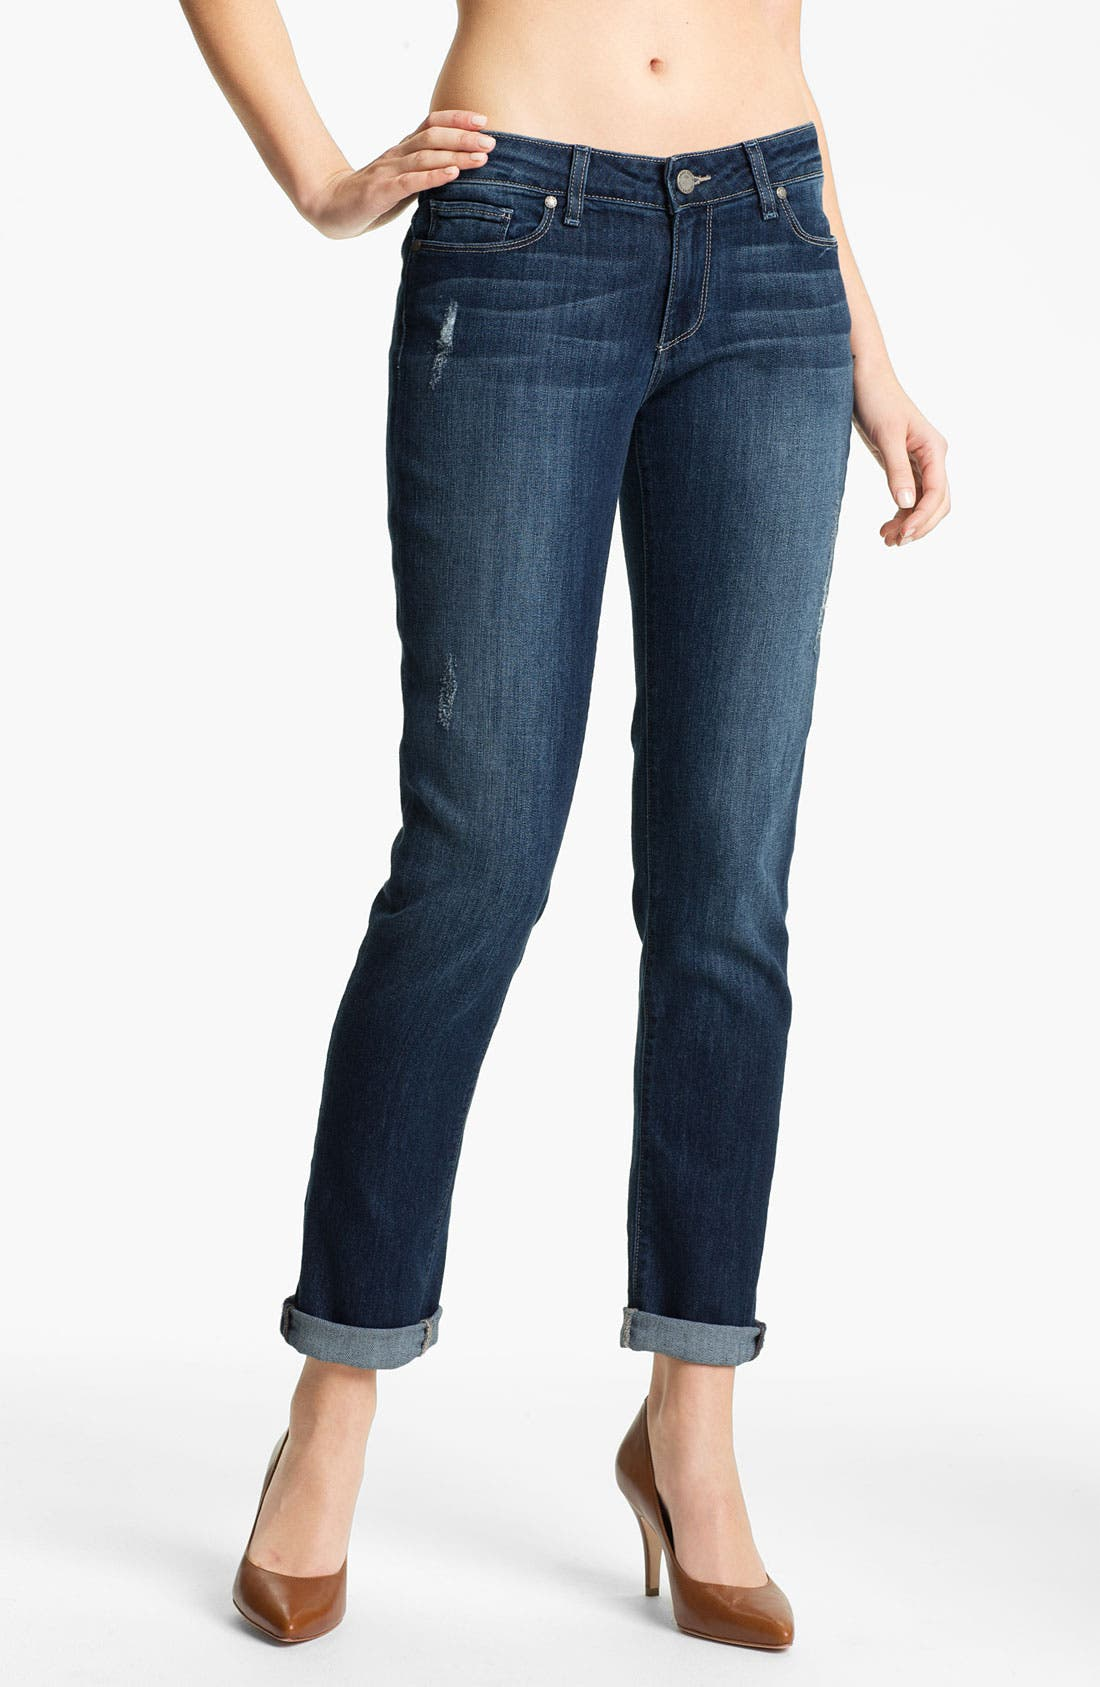 Main Image - Paige Denim 'Jimmy Jimmy' Distressed Skinny Jeans (Mandi Destruction)